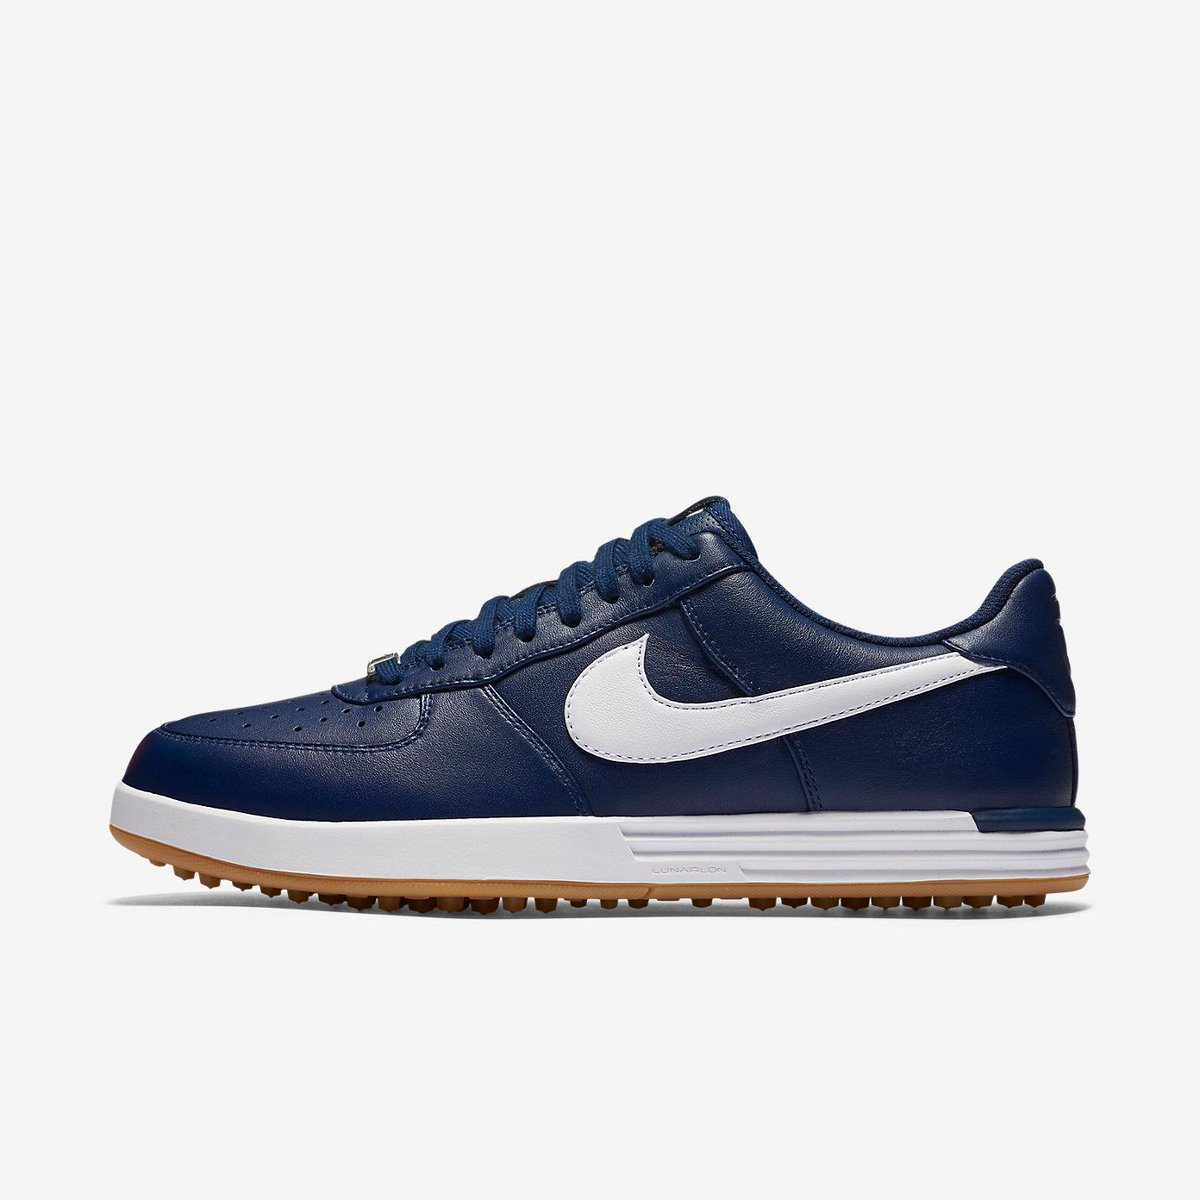 a83630f7d95db nike lunar force 1 g feat a waterproof leather upper available here